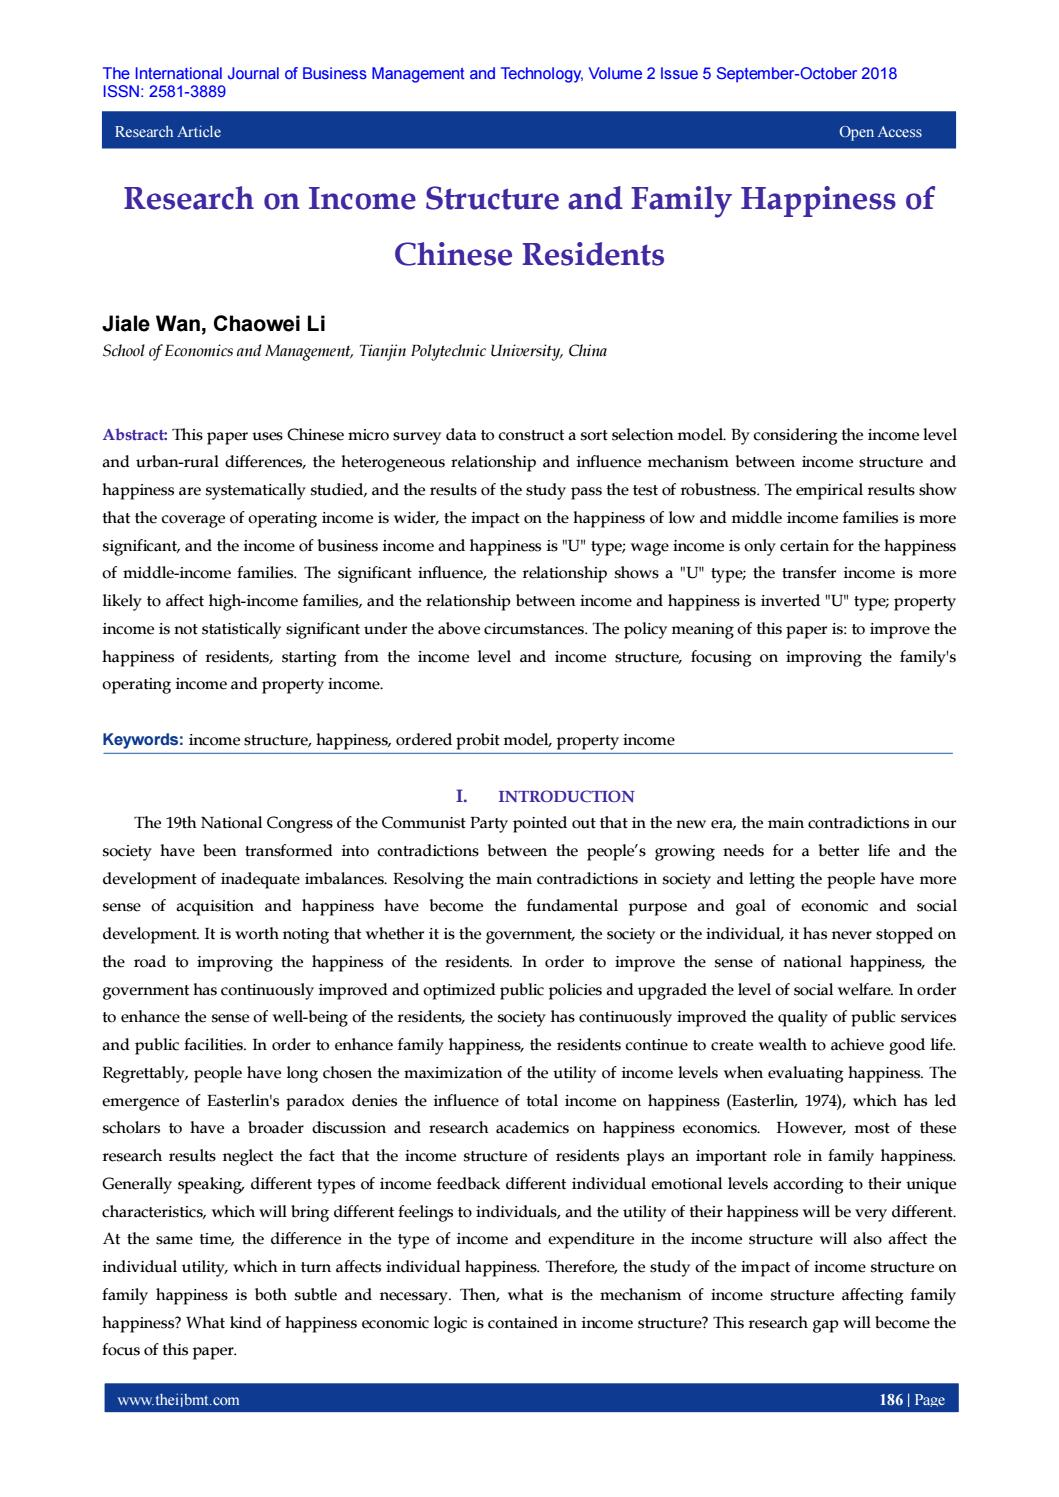 Research on Income Structure and Family Happiness of Chinese Residents